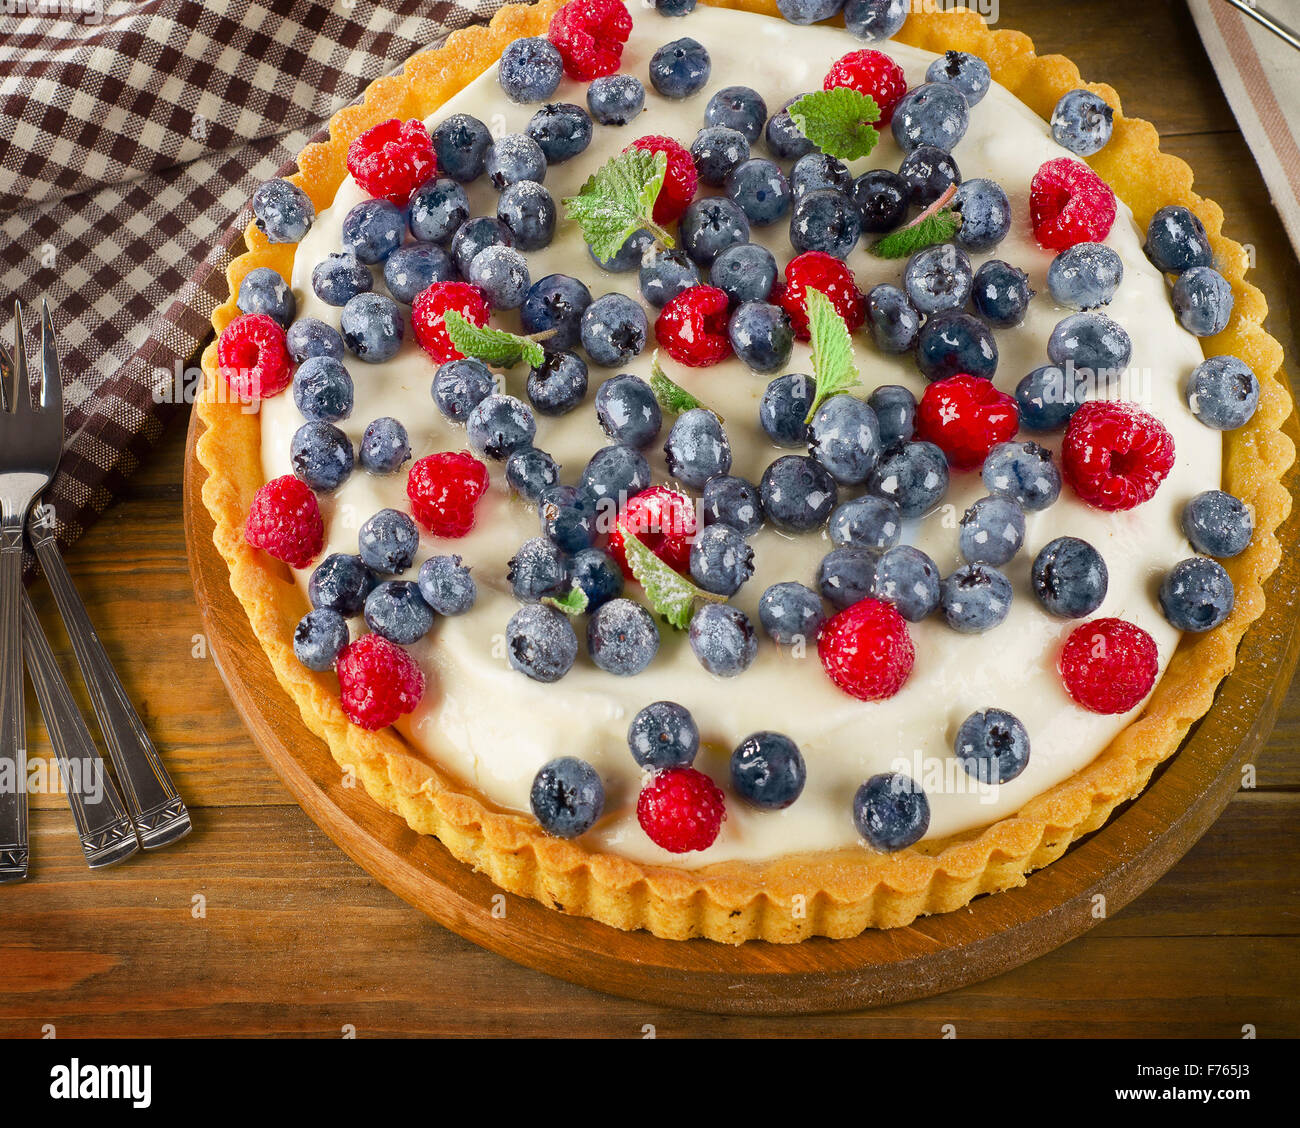 Cheese Cake with fresh berries and mint leaves. - Stock Image